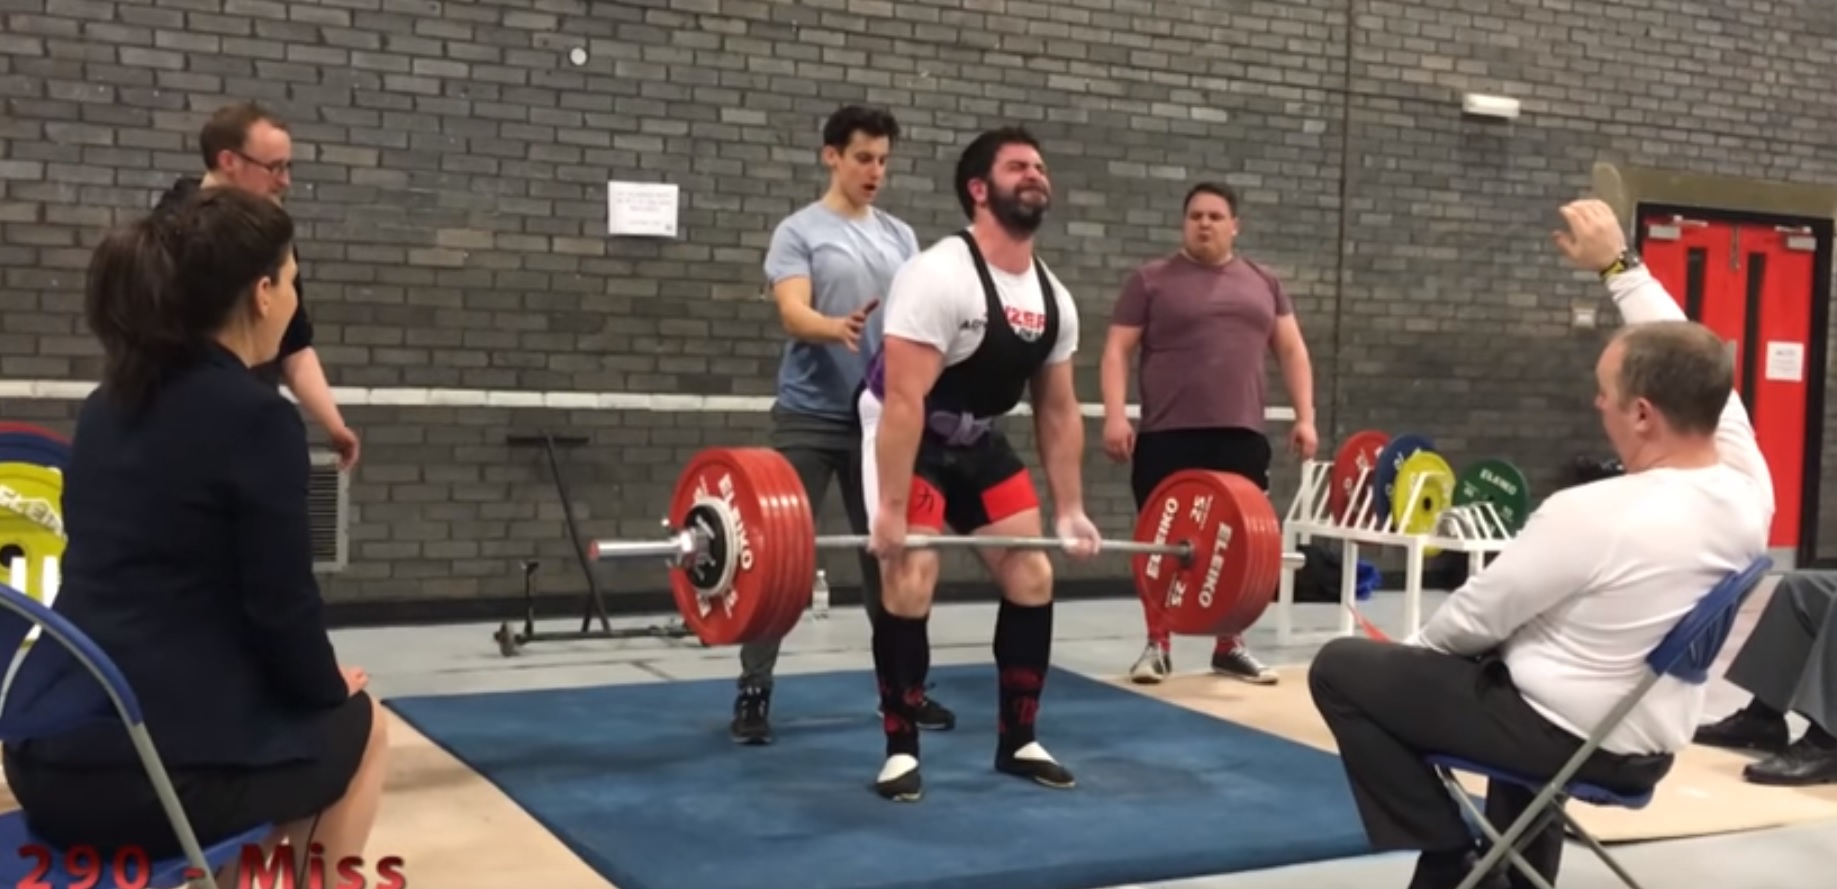 deadlift cast iron strength the conditions in the competition were far from ideal due to logistical problems needing to be out of the venue for a certain time the second group of